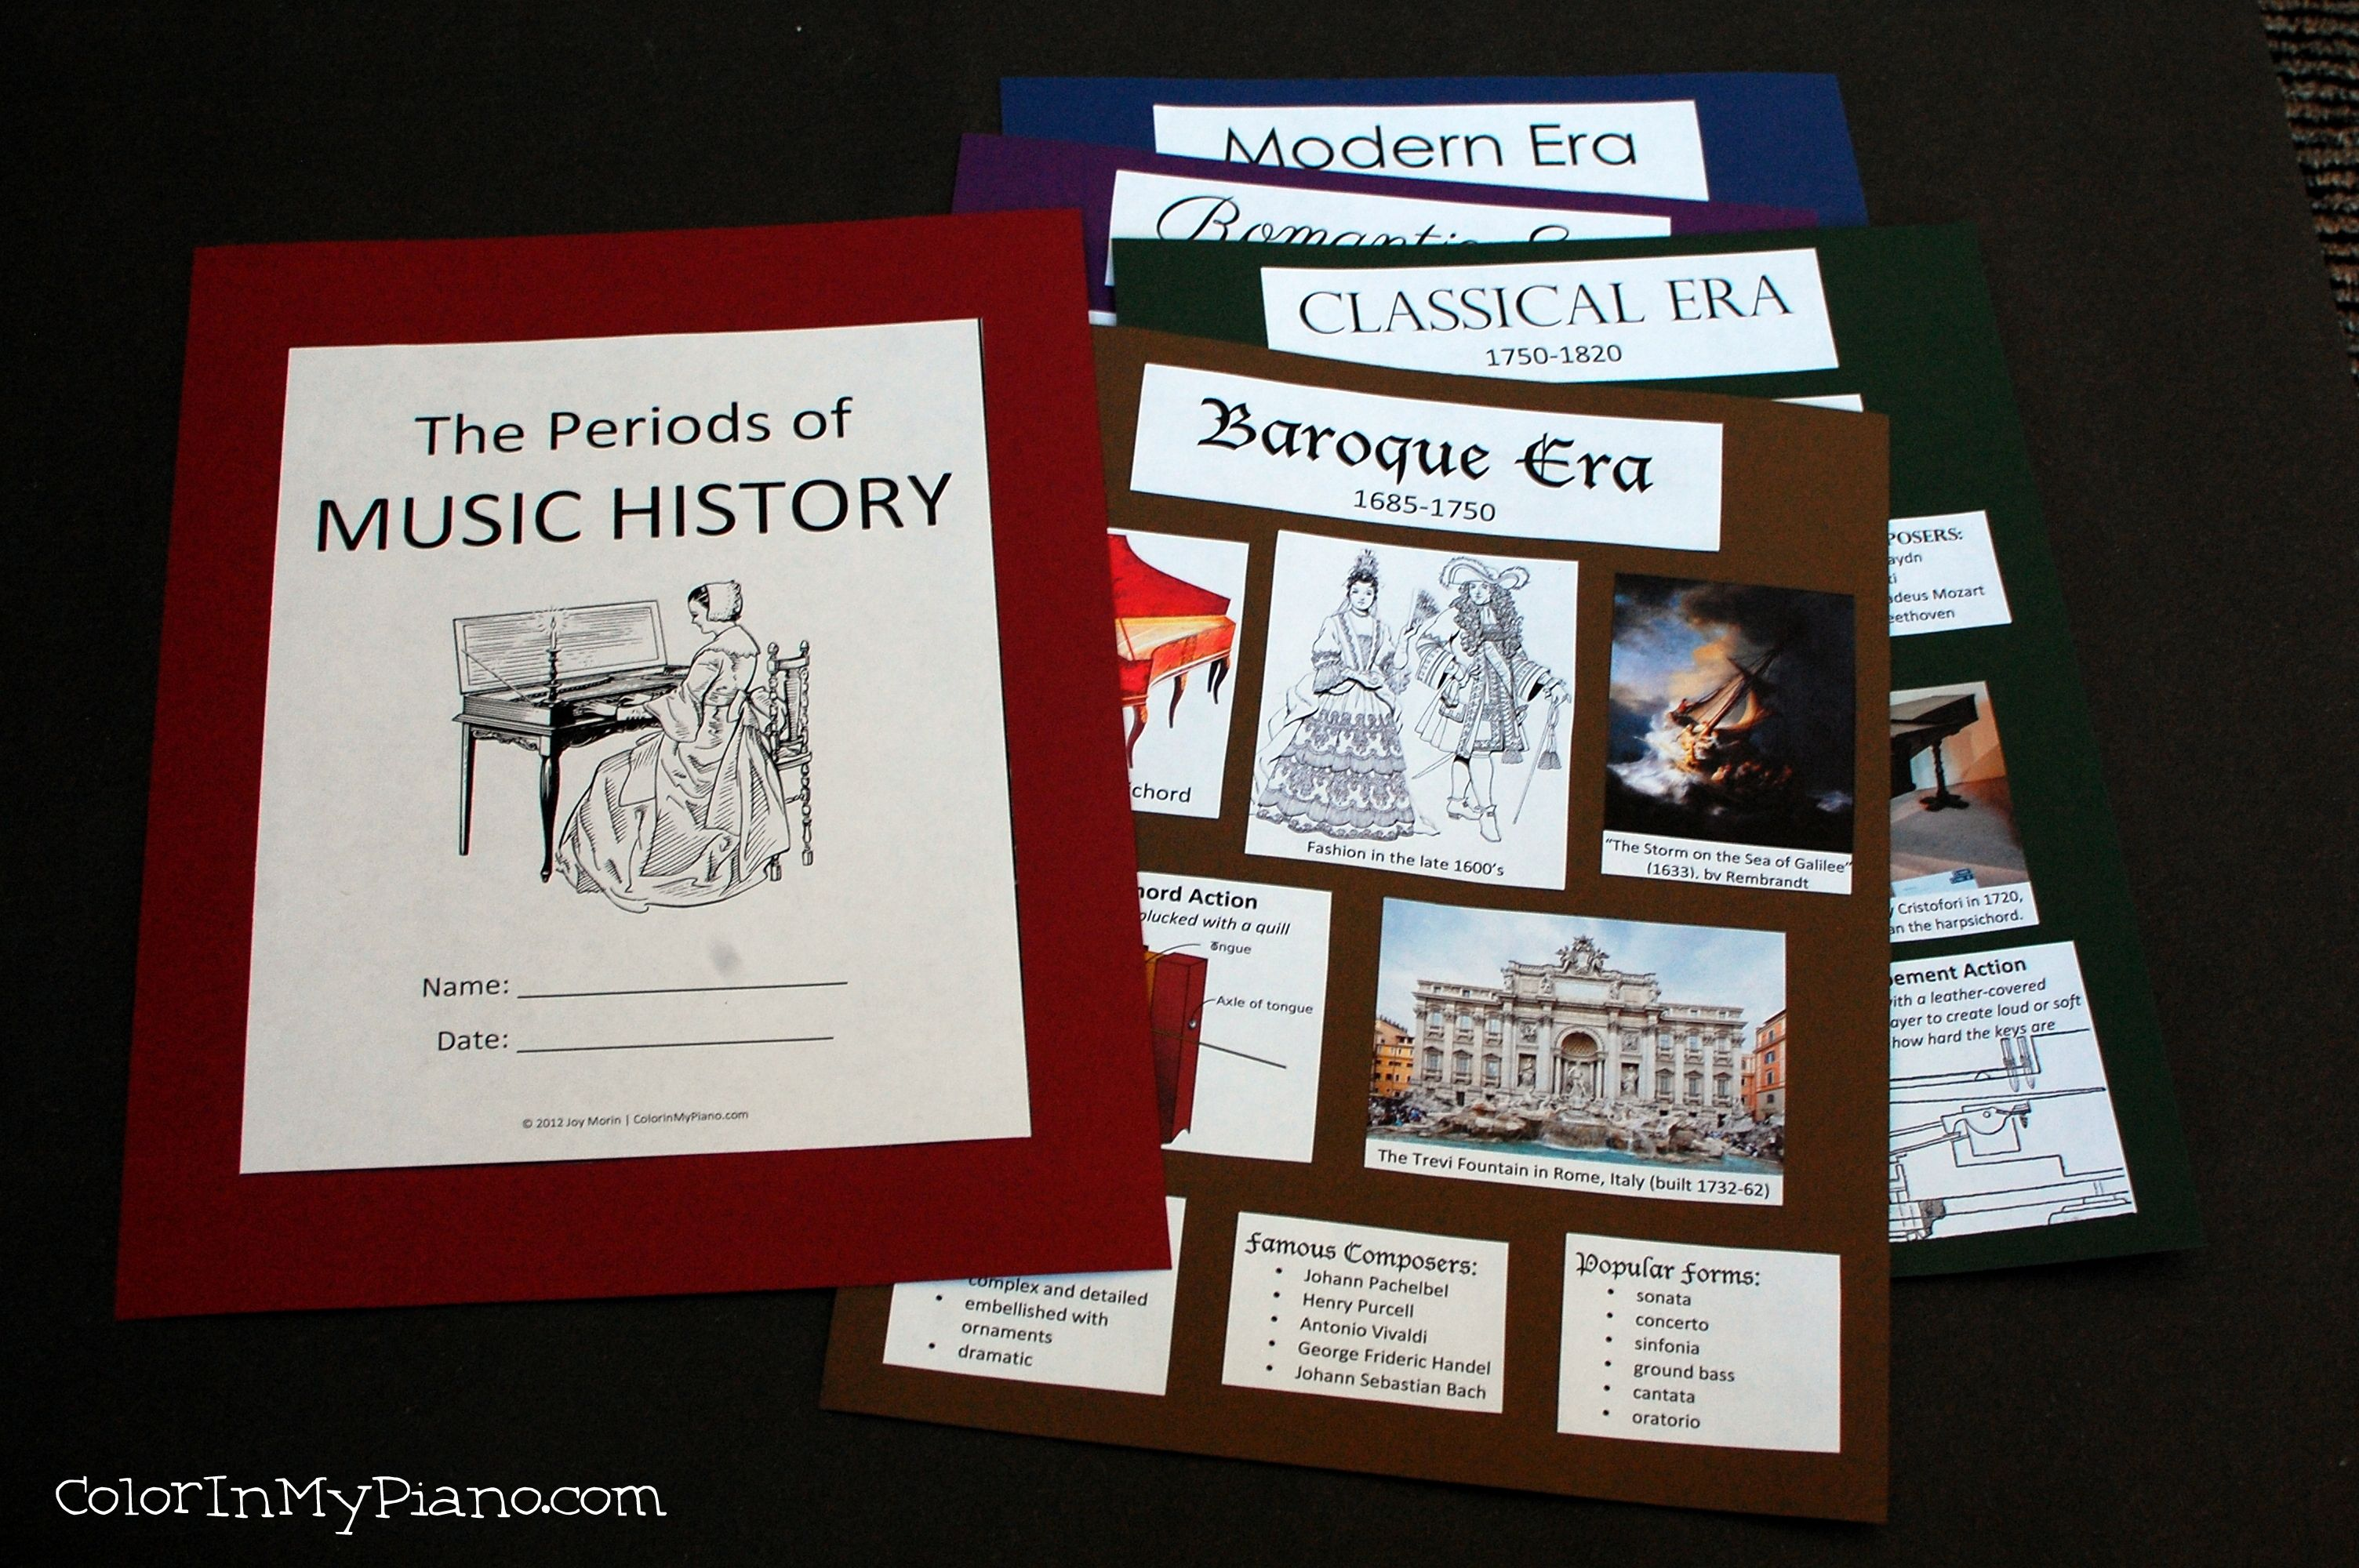 Free Music History Period pdf. {NICE - Lapbook or notebooking page waiting to be made}. This 5-page pdf contains pictures and information about the four main periods in the history of Western classical music (Baroque, Classical, Romantic, and Modern). Students can glue the pieces onto a pieces of cardstock paper (to be stapled into a booklet) or into a colored file folder.